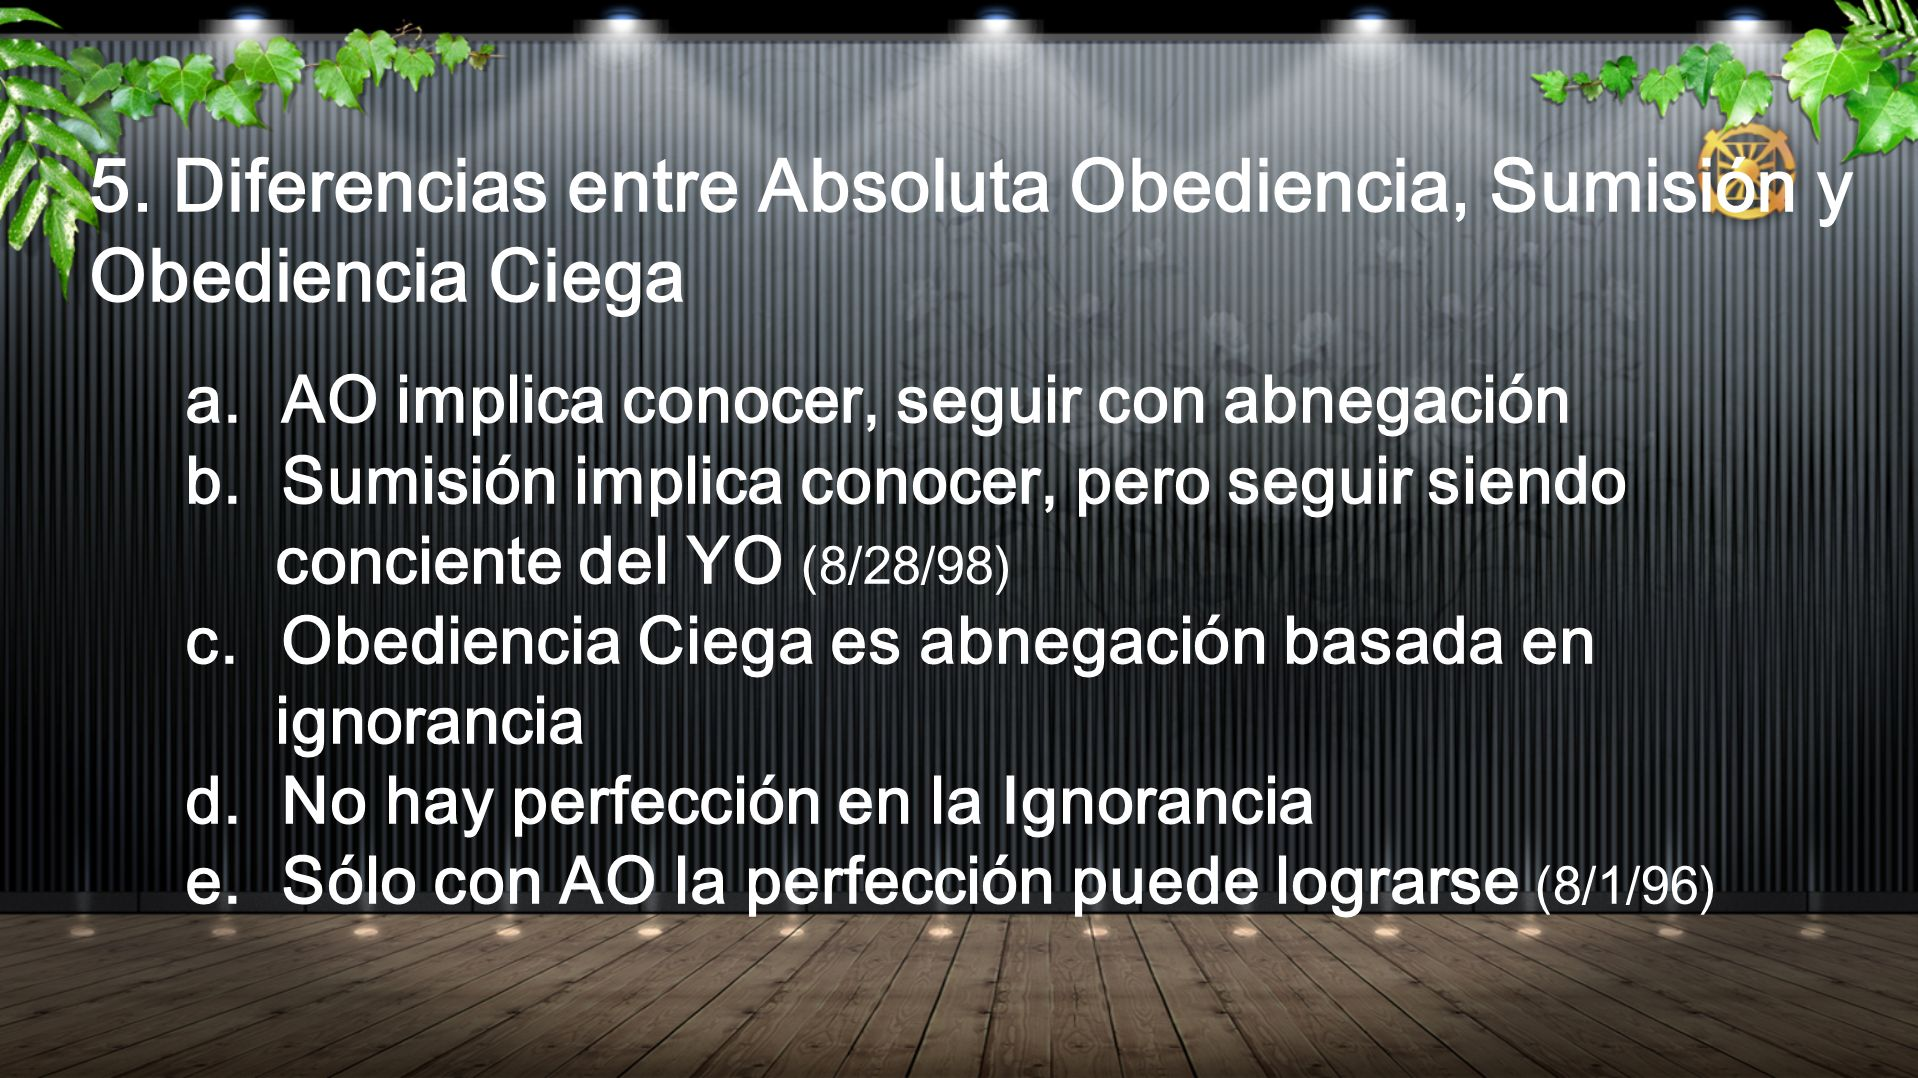 5. Diferencias entre Absoluta Obediencia, Sumisión y Obediencia Ciega